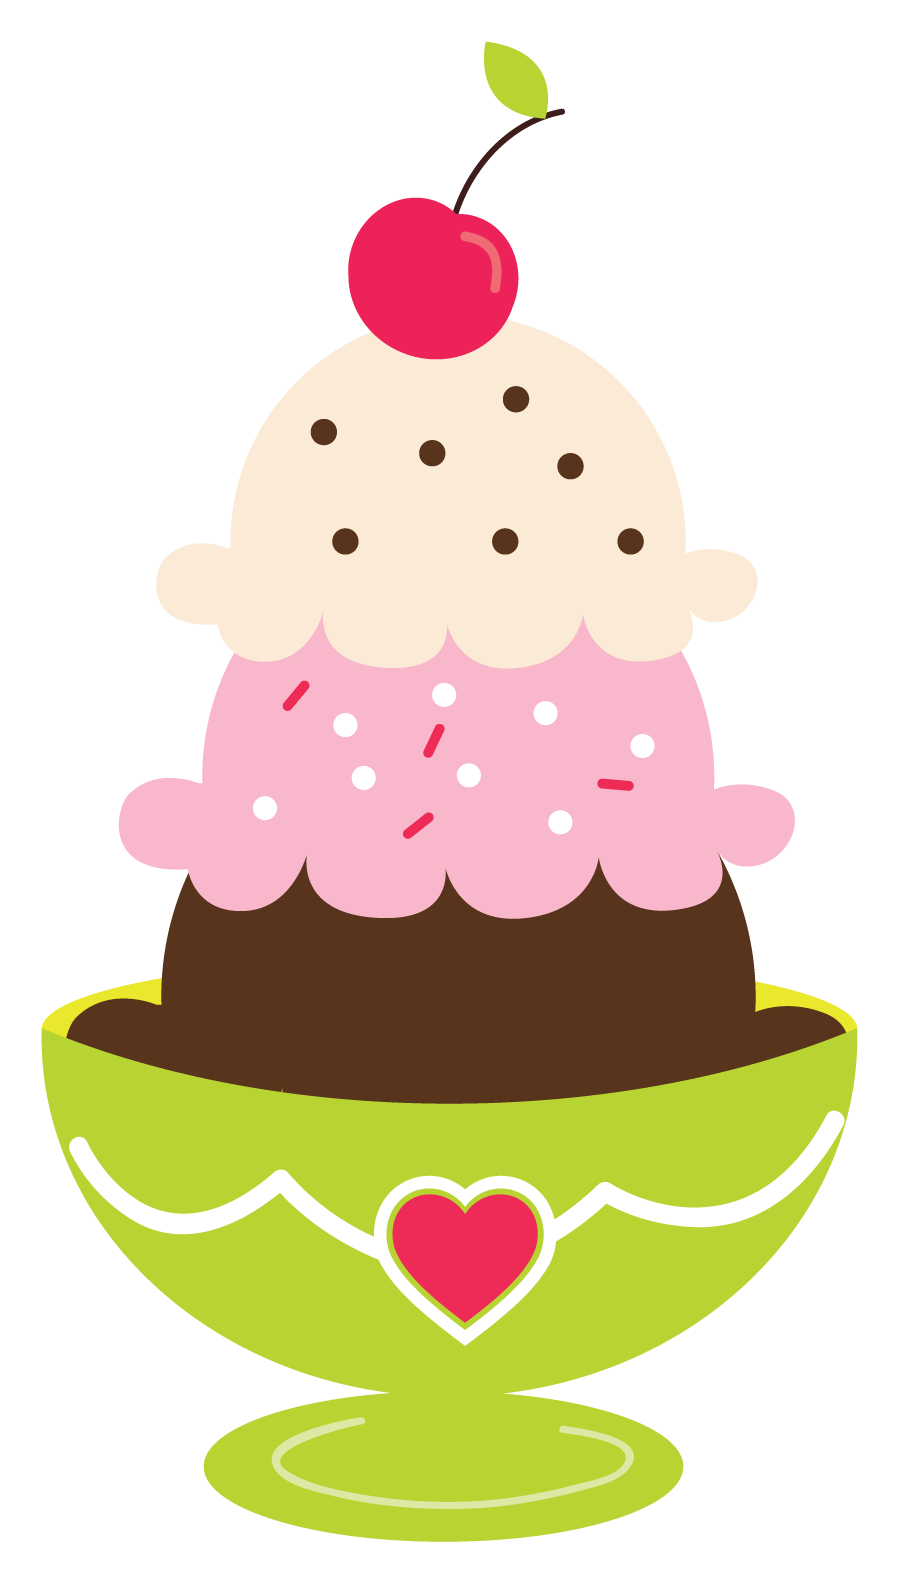 Planning clipart gambar. Ice cream sundae printables